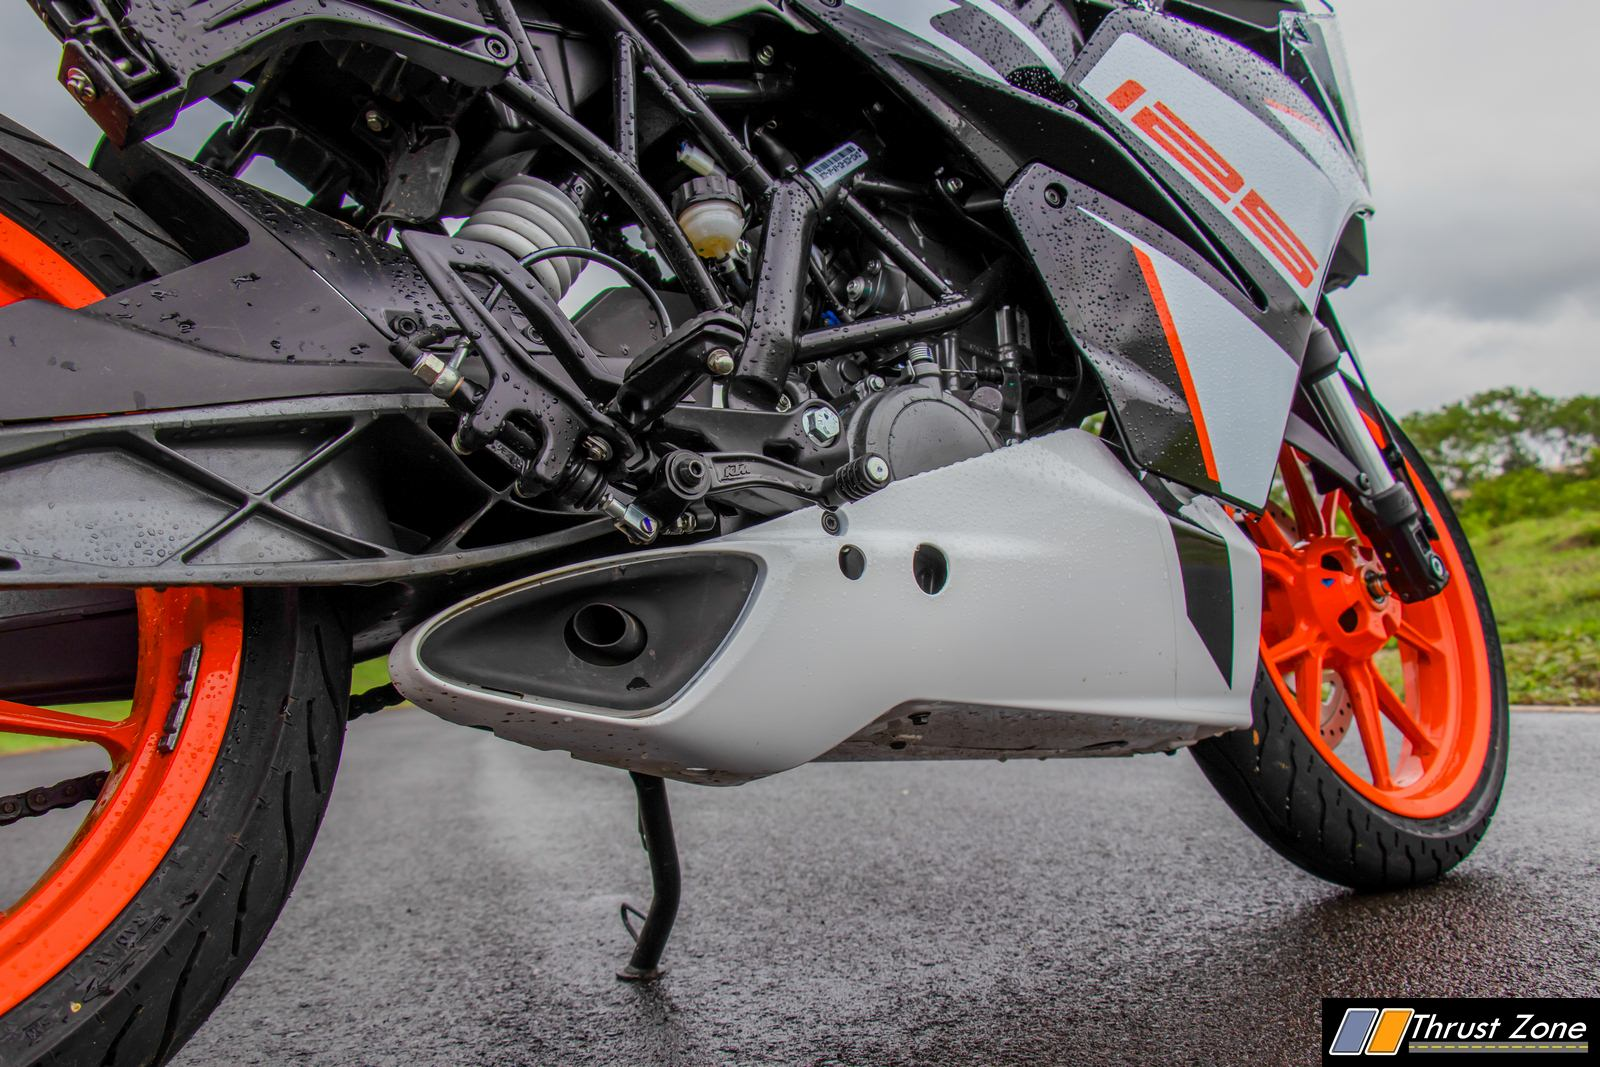 2019 Ktm Rc 125 India Review 10 Thrust Zone